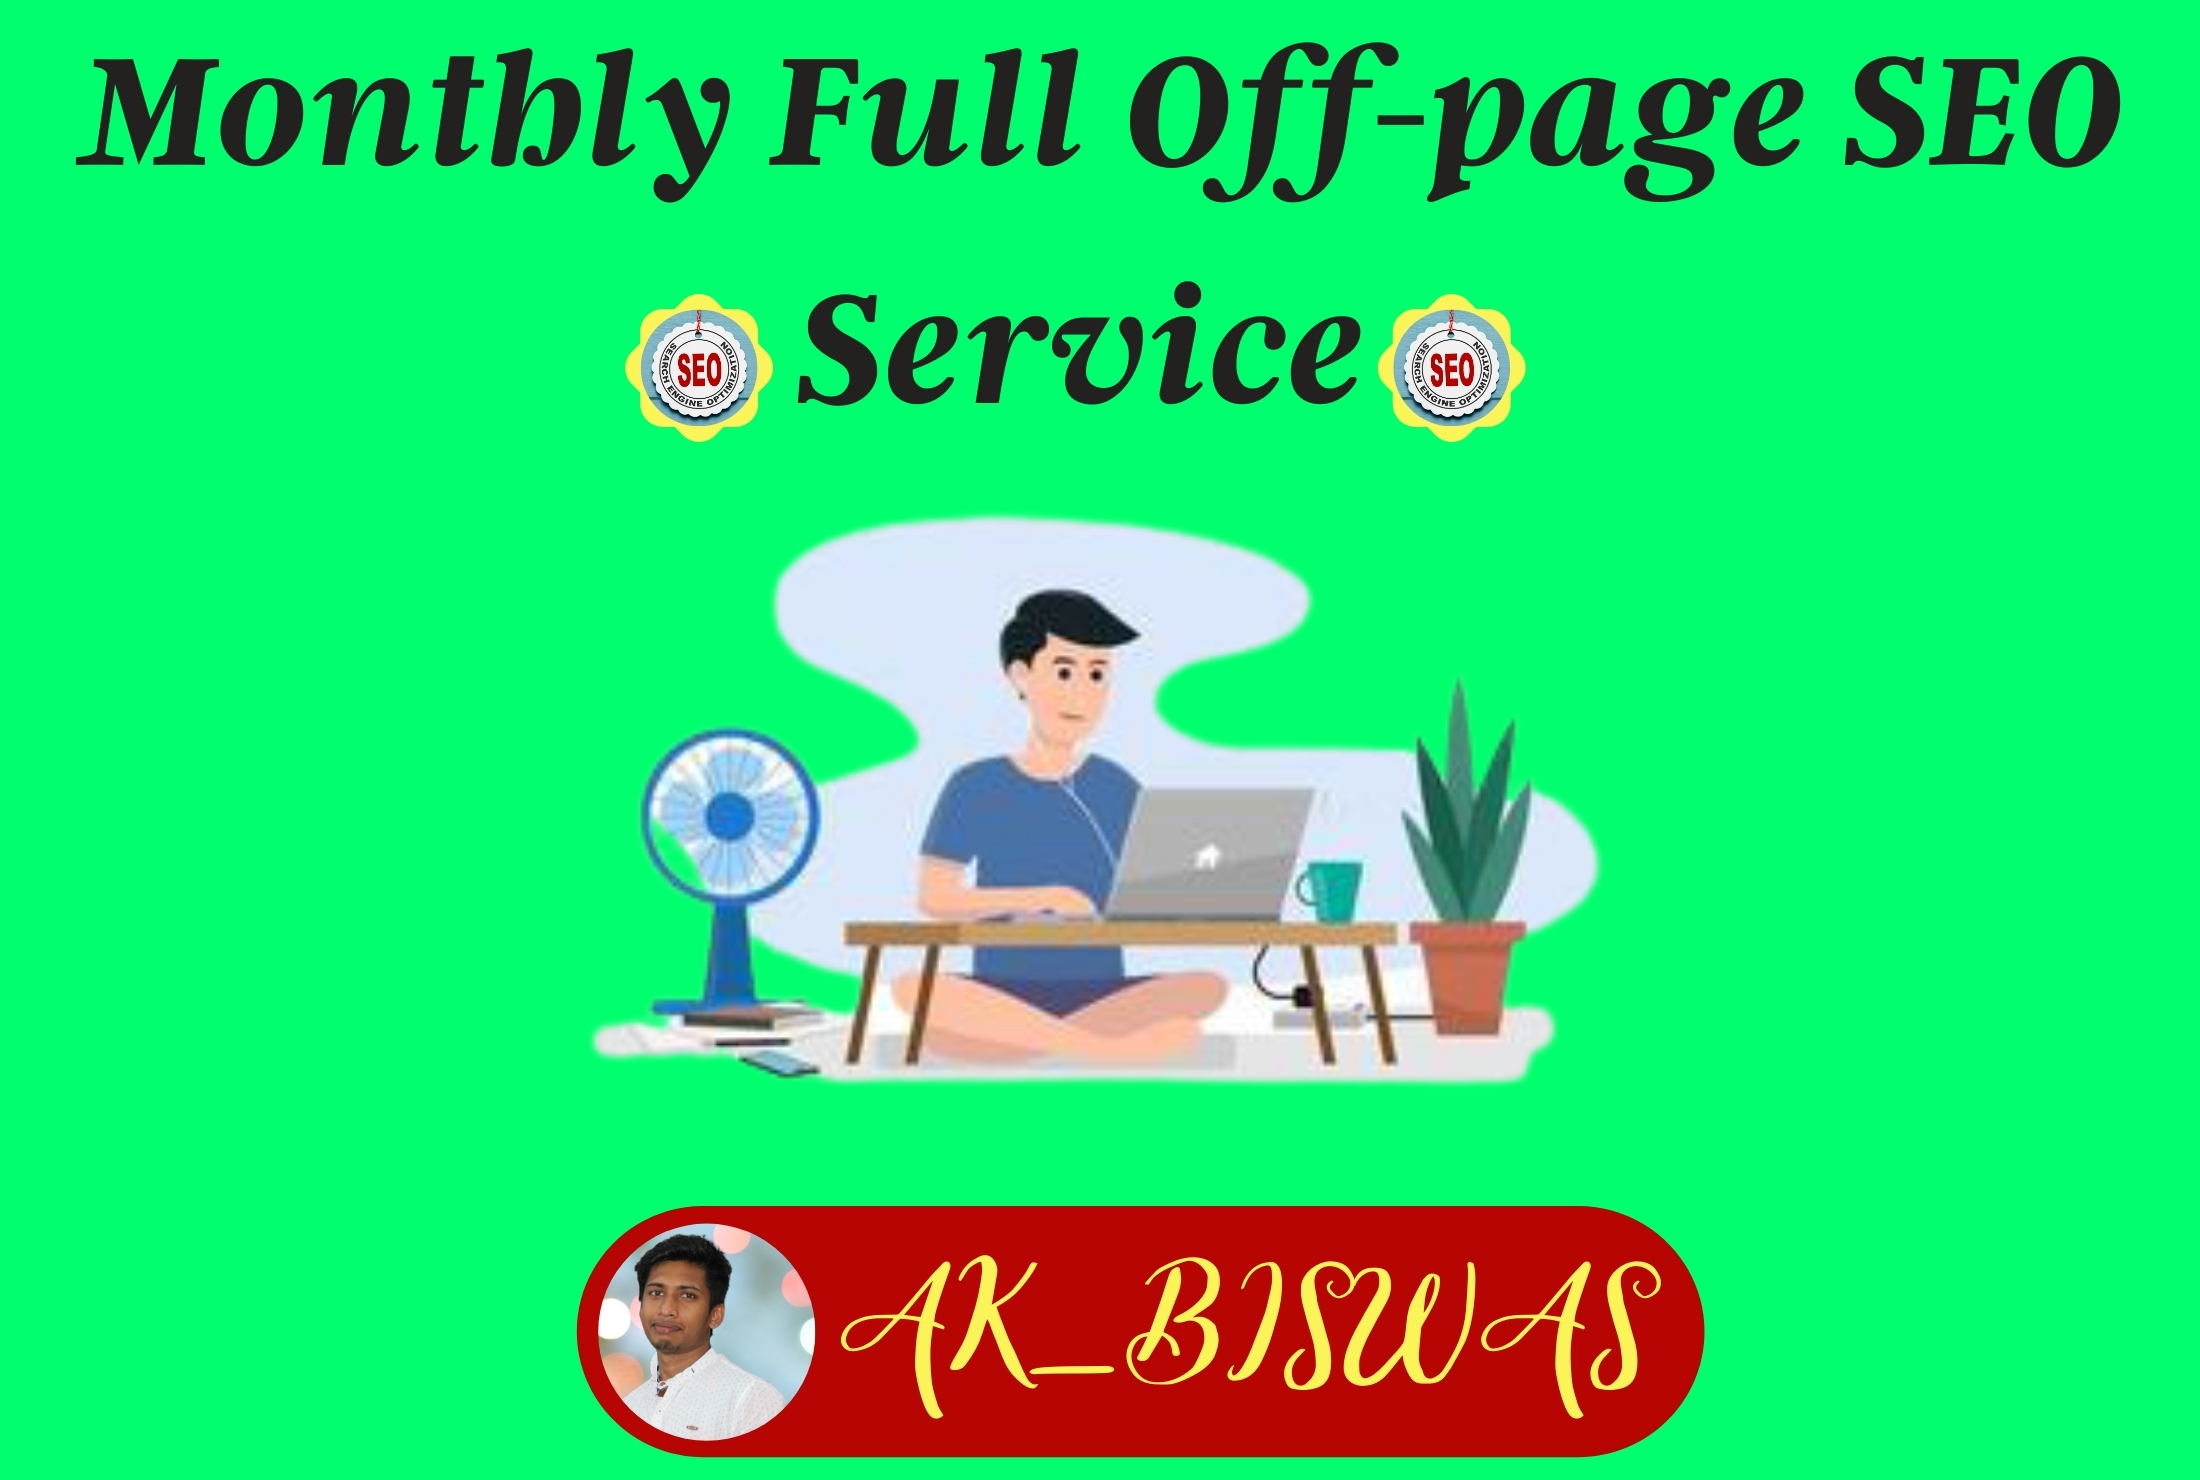 All-In-One Monthly full off page SEO service with High Quality backlink